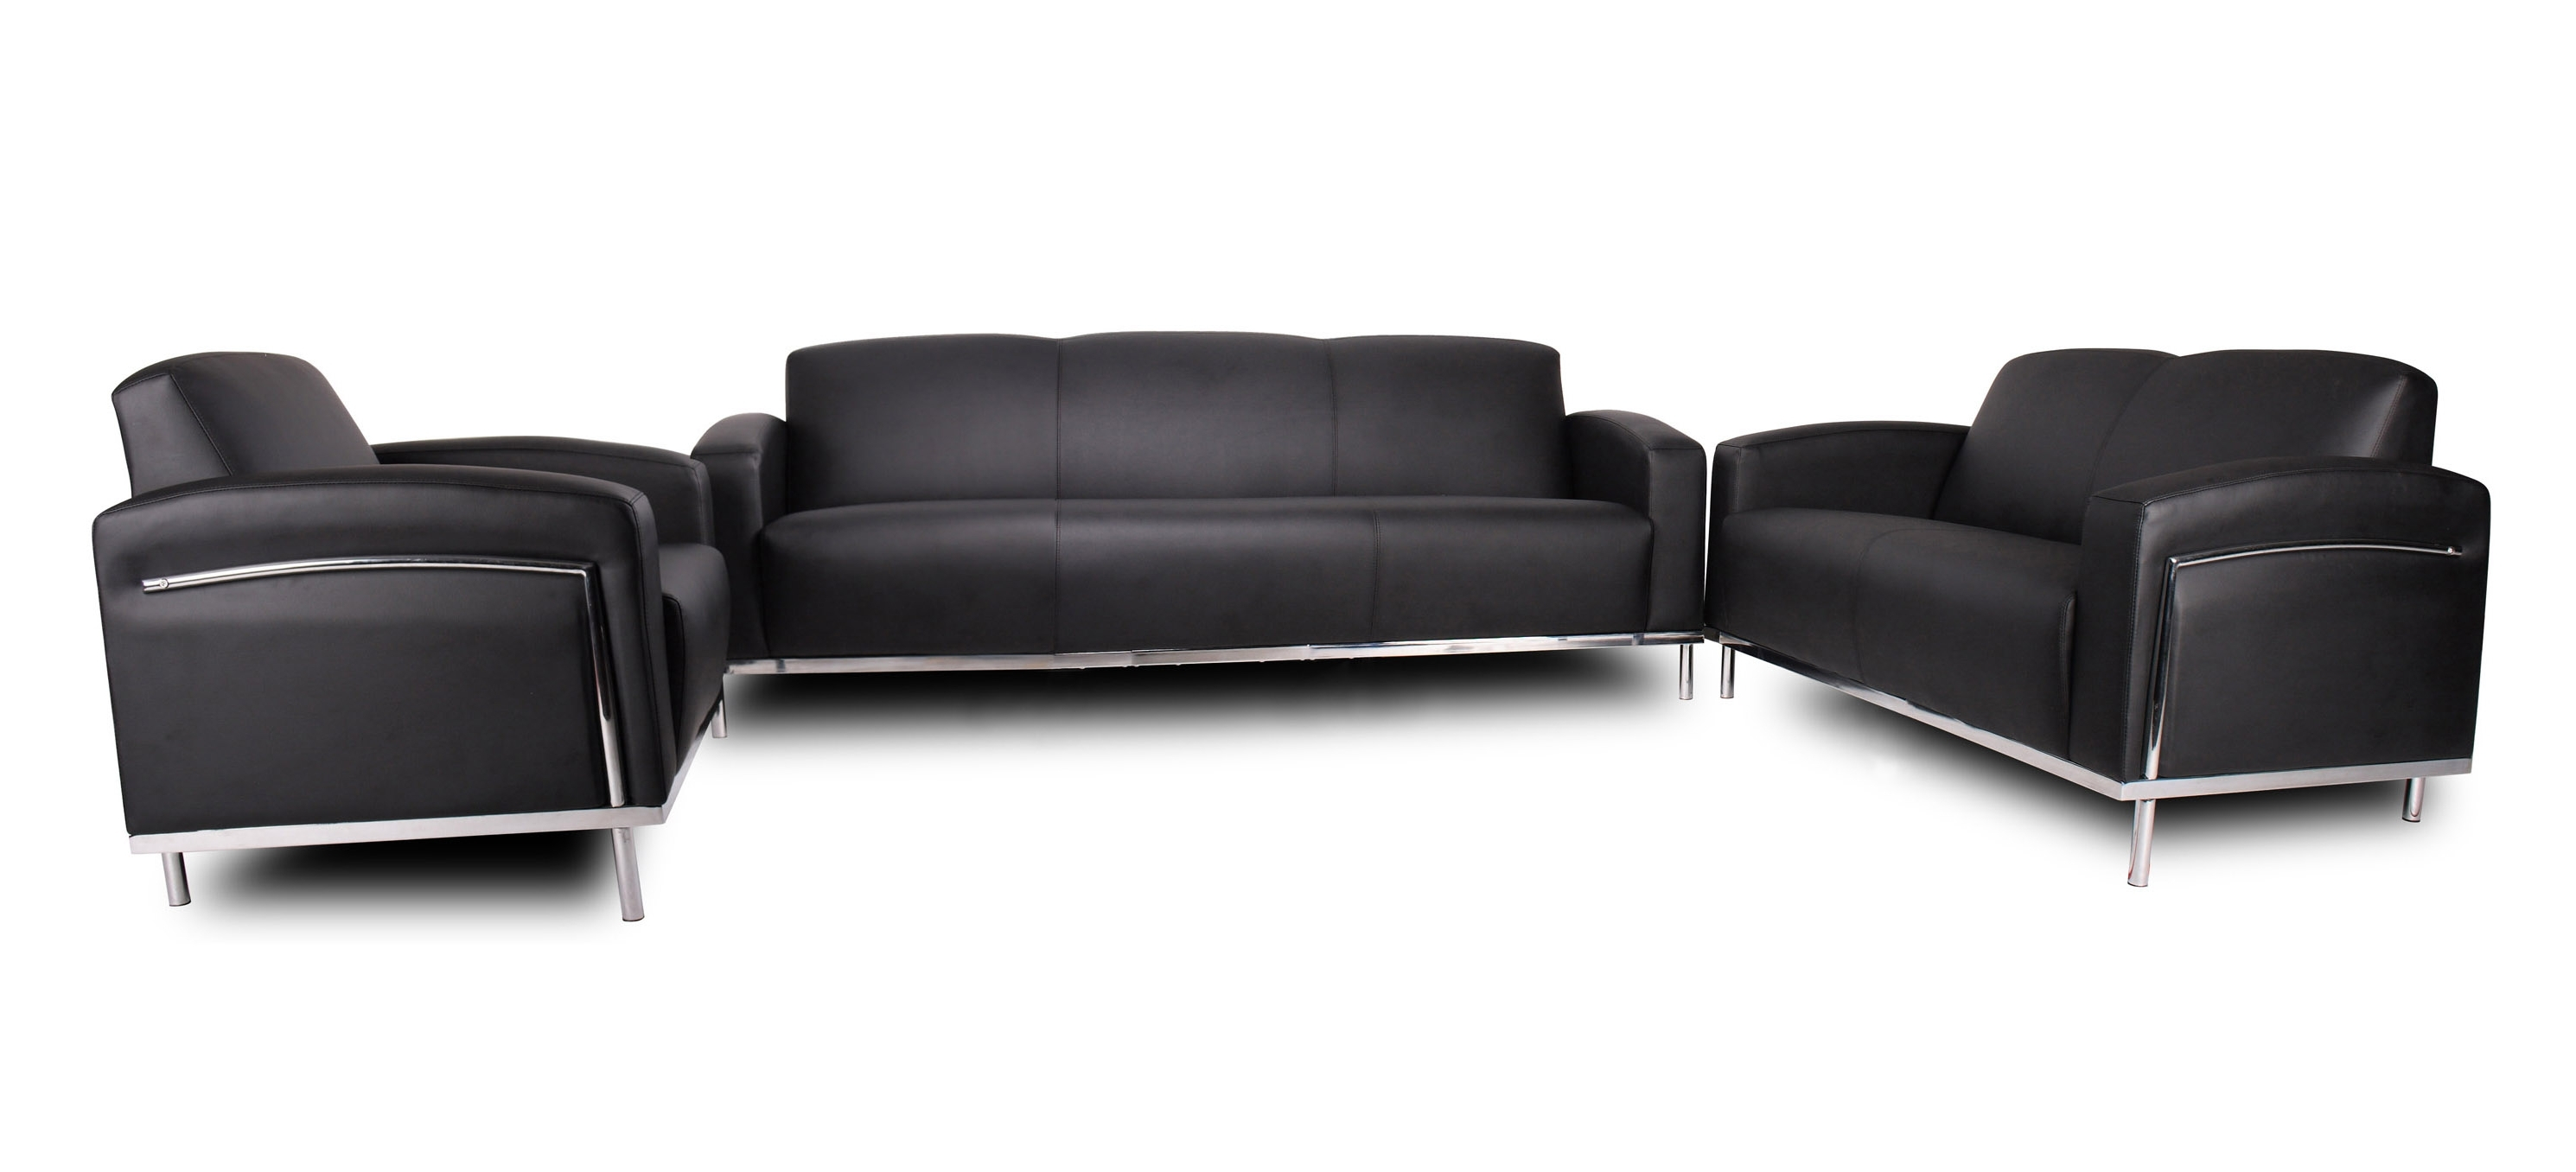 Office Sofas Within Most Popular Sofas : Red Office Sofa Modern Office Sofa Reception Area Couches (Gallery 11 of 20)